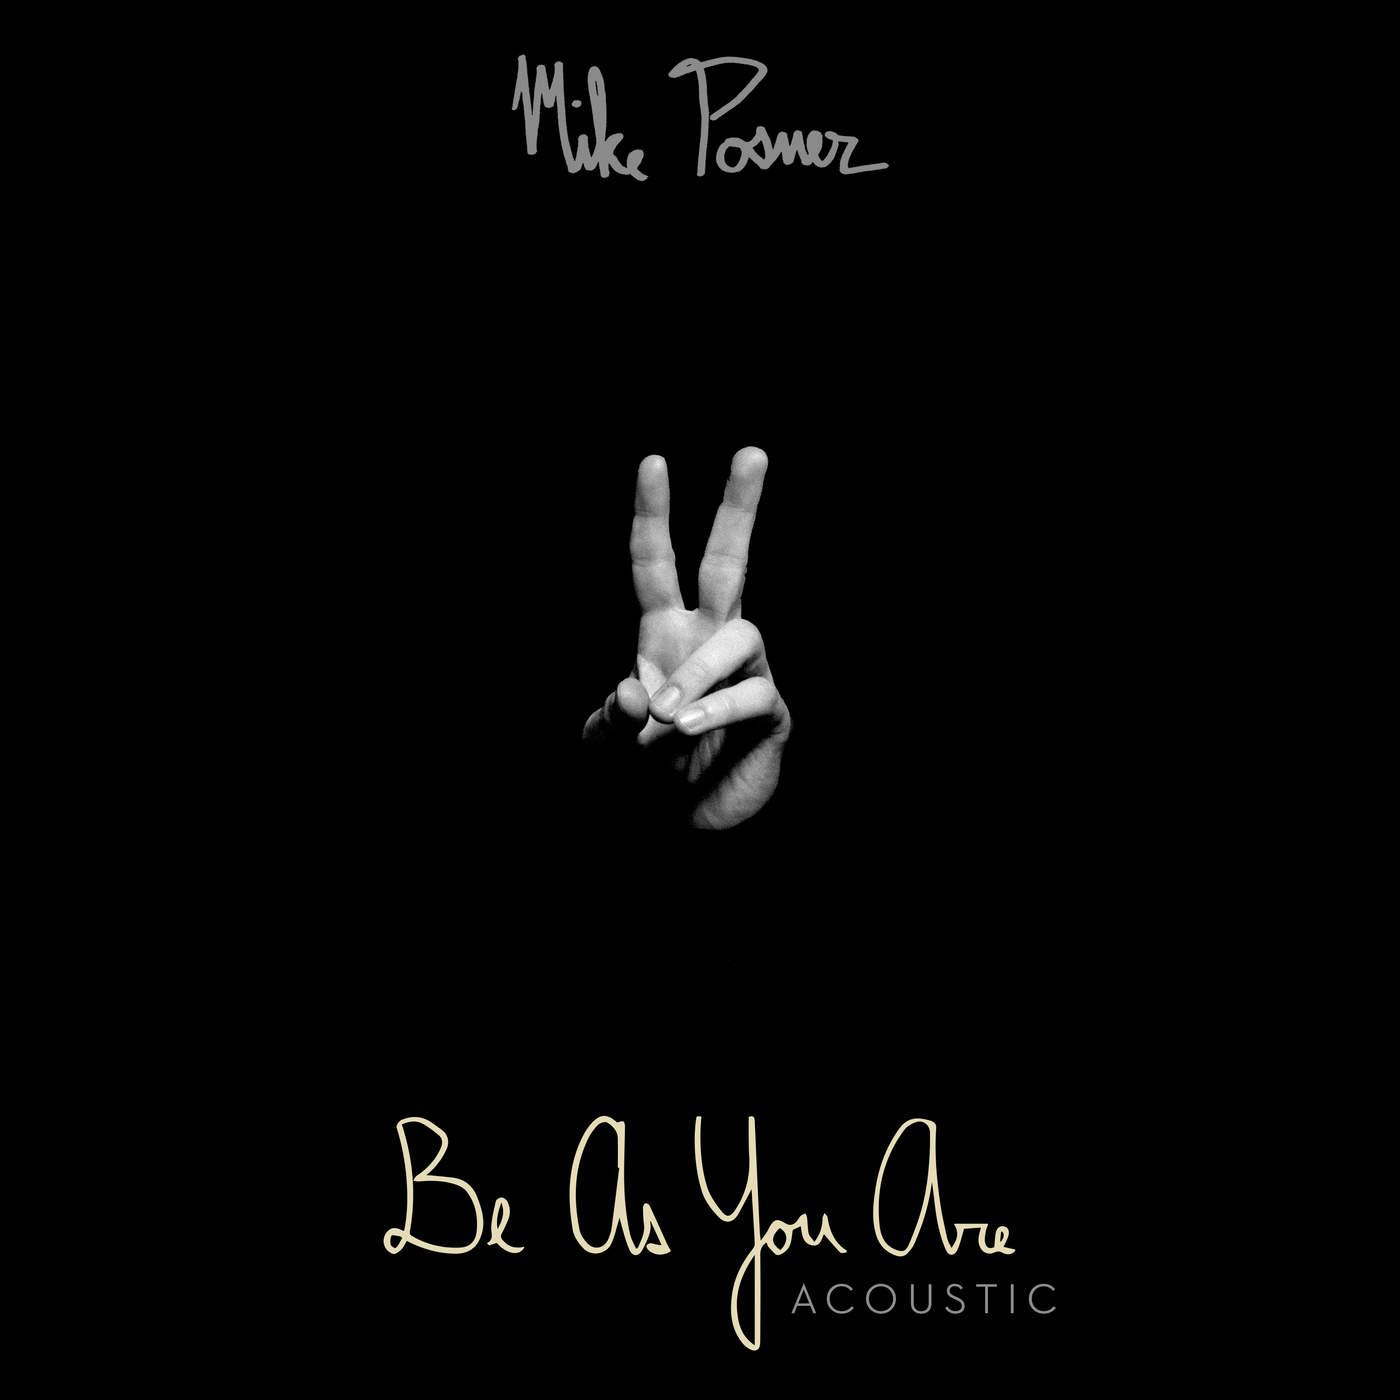 Mike Posner - Be As You Are (Acoustic) 静静聆听